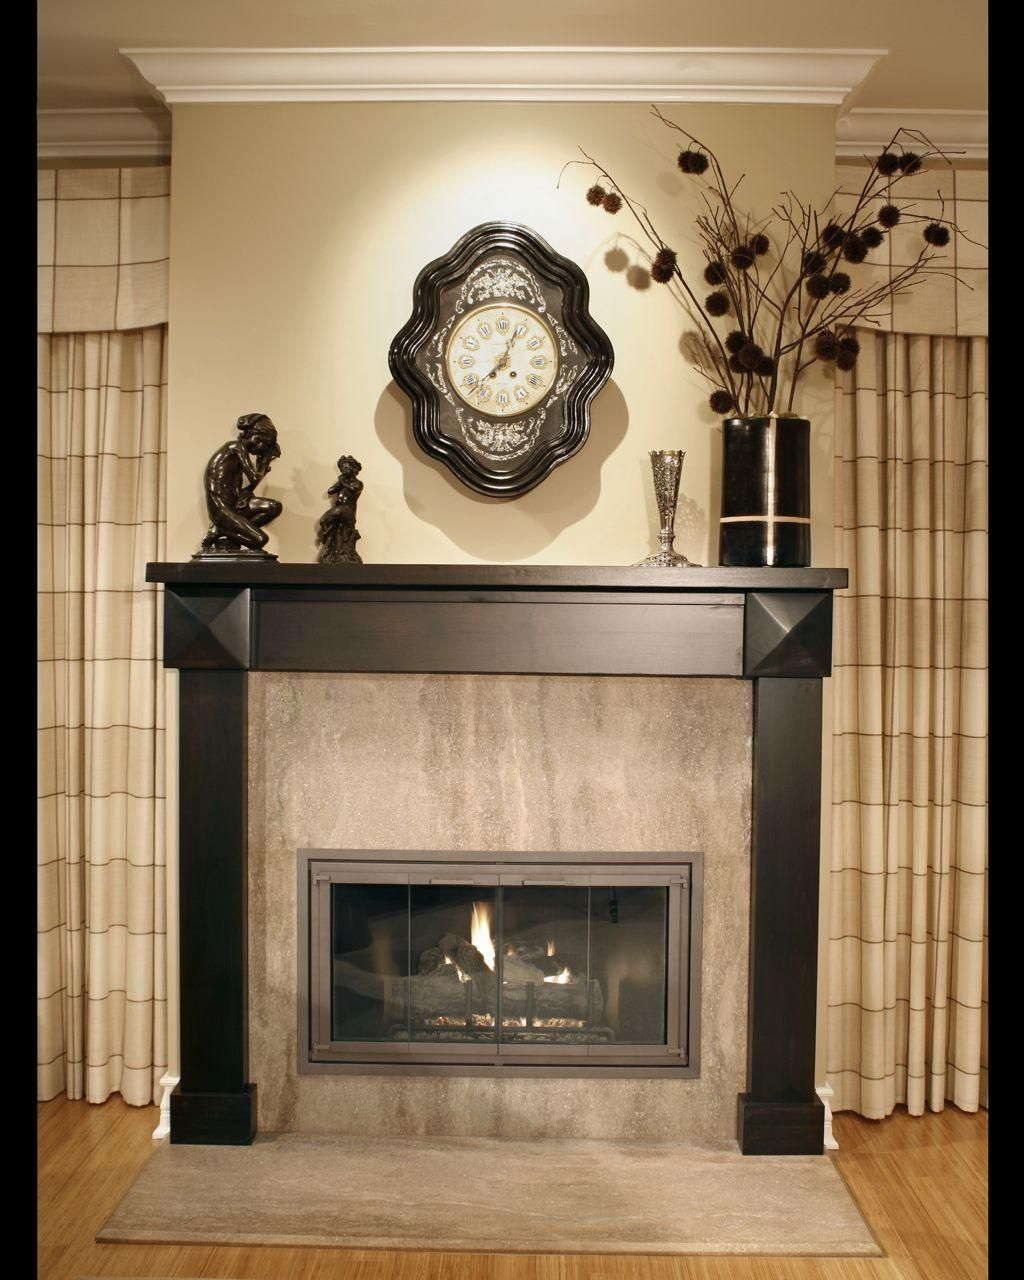 Fireplace Mantel Design Ideas find this pin and more on fireplace decorating Find This Pin And More On Fireplace Decorating